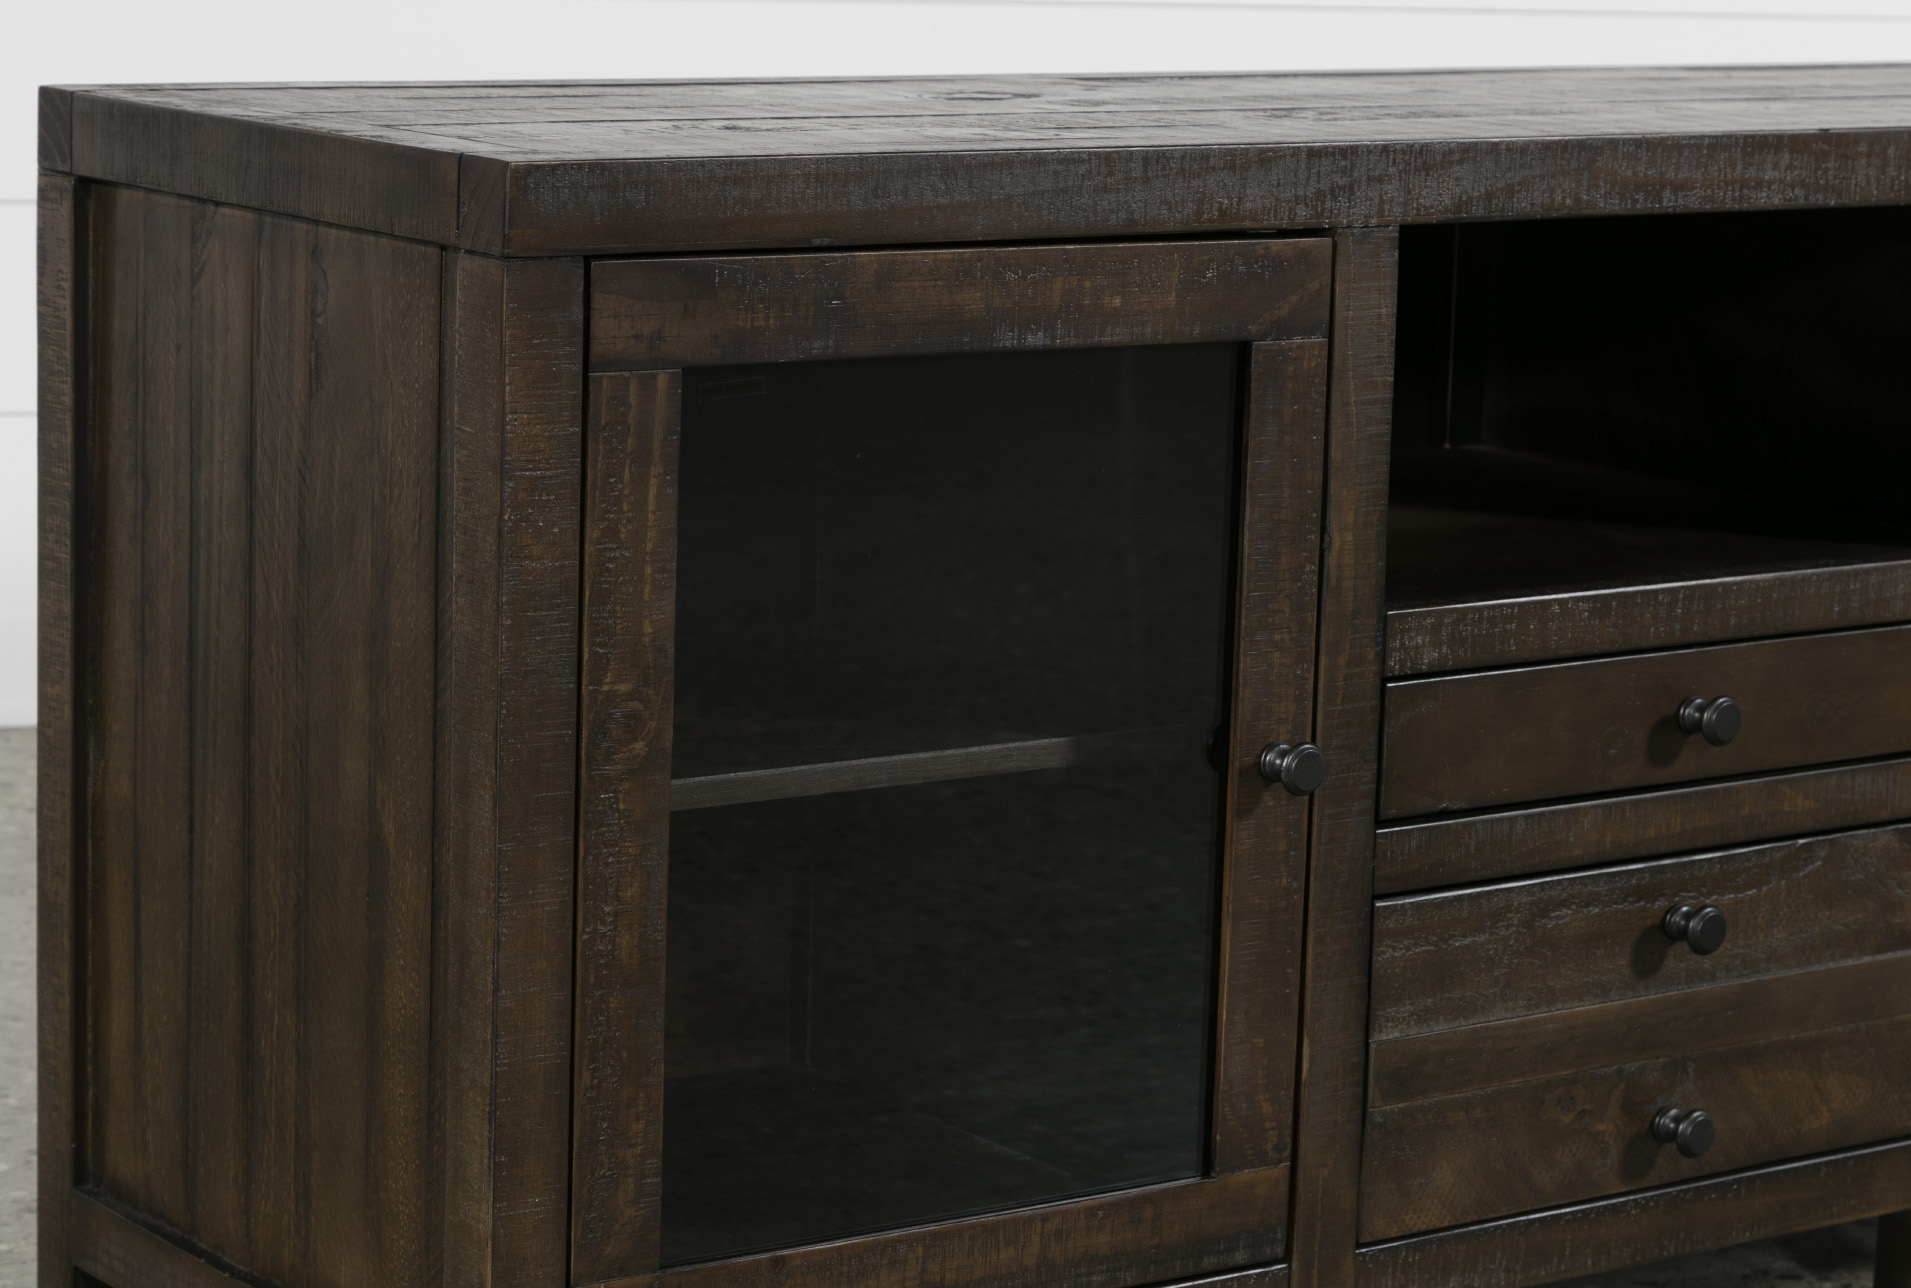 Rowan 64 Inch Tv Stand | Products | Pinterest | Rowan for Rowan 64 Inch Tv Stands (Image 23 of 30)